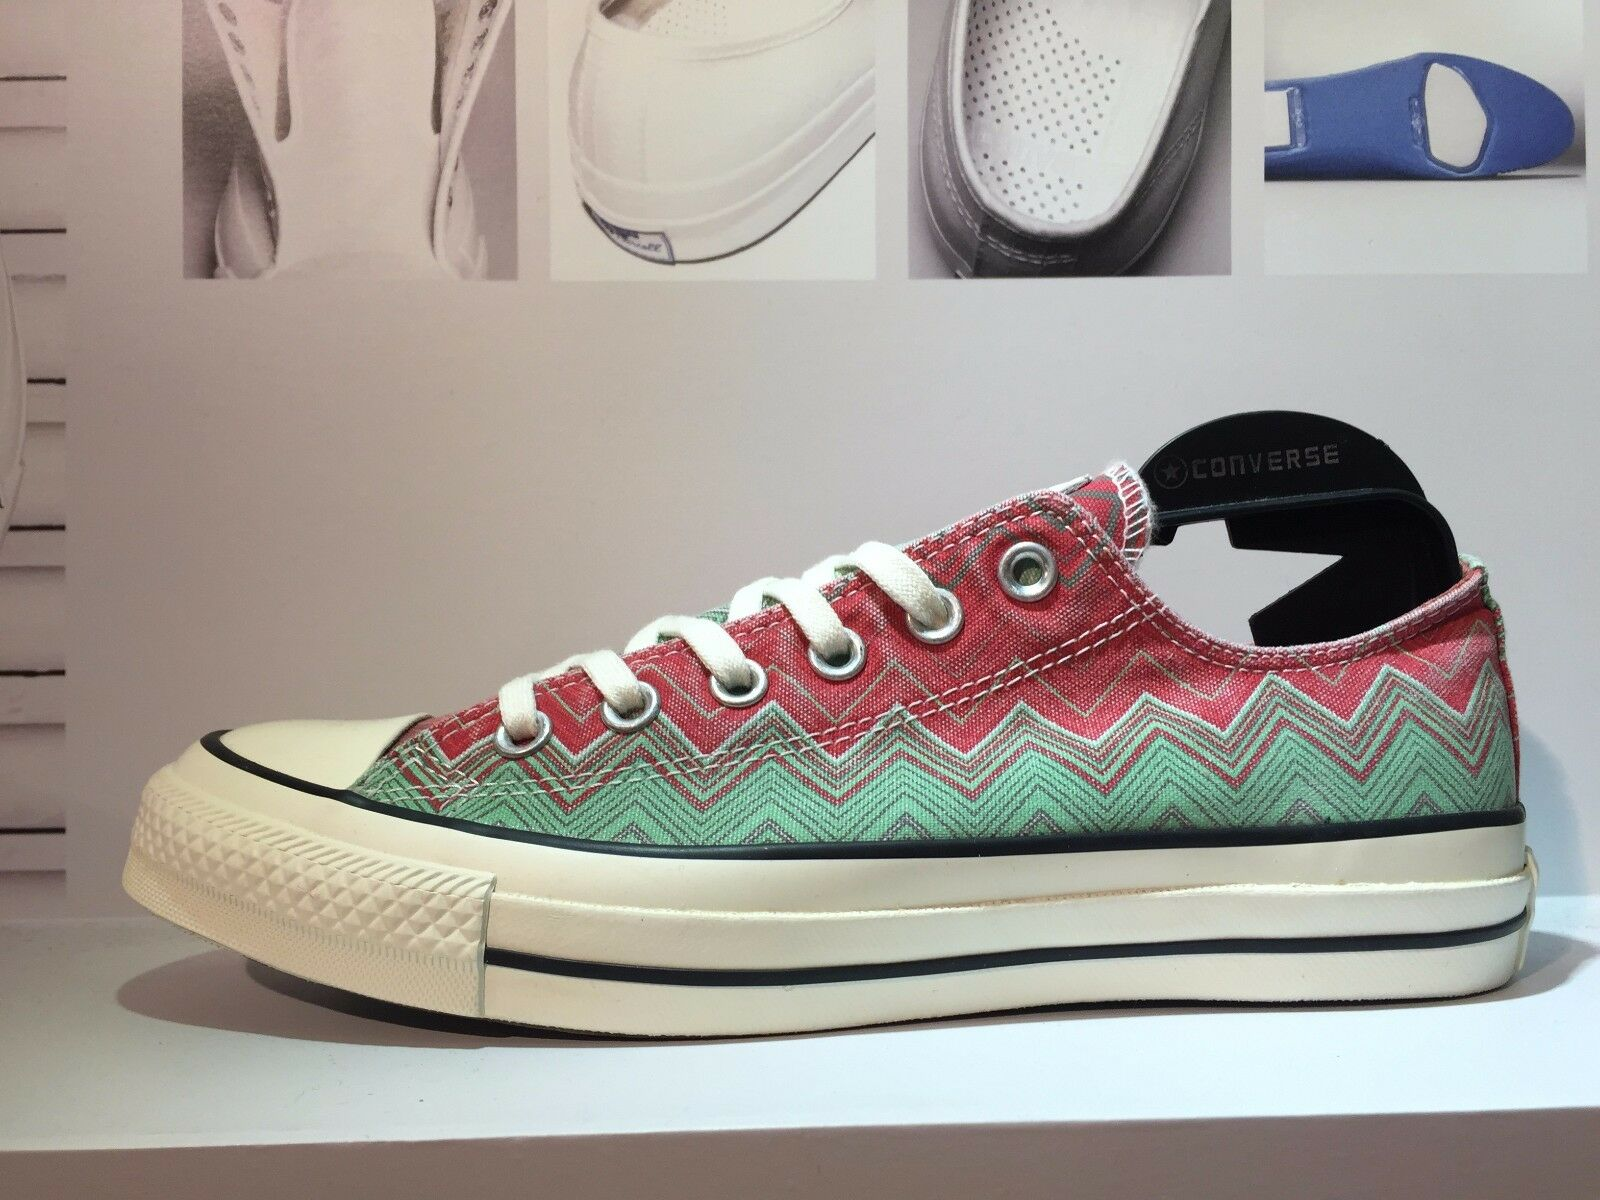 New CONVERSE X MISSONI Chuck Taylor All Star Pink Green Men Shoes 147273C US11